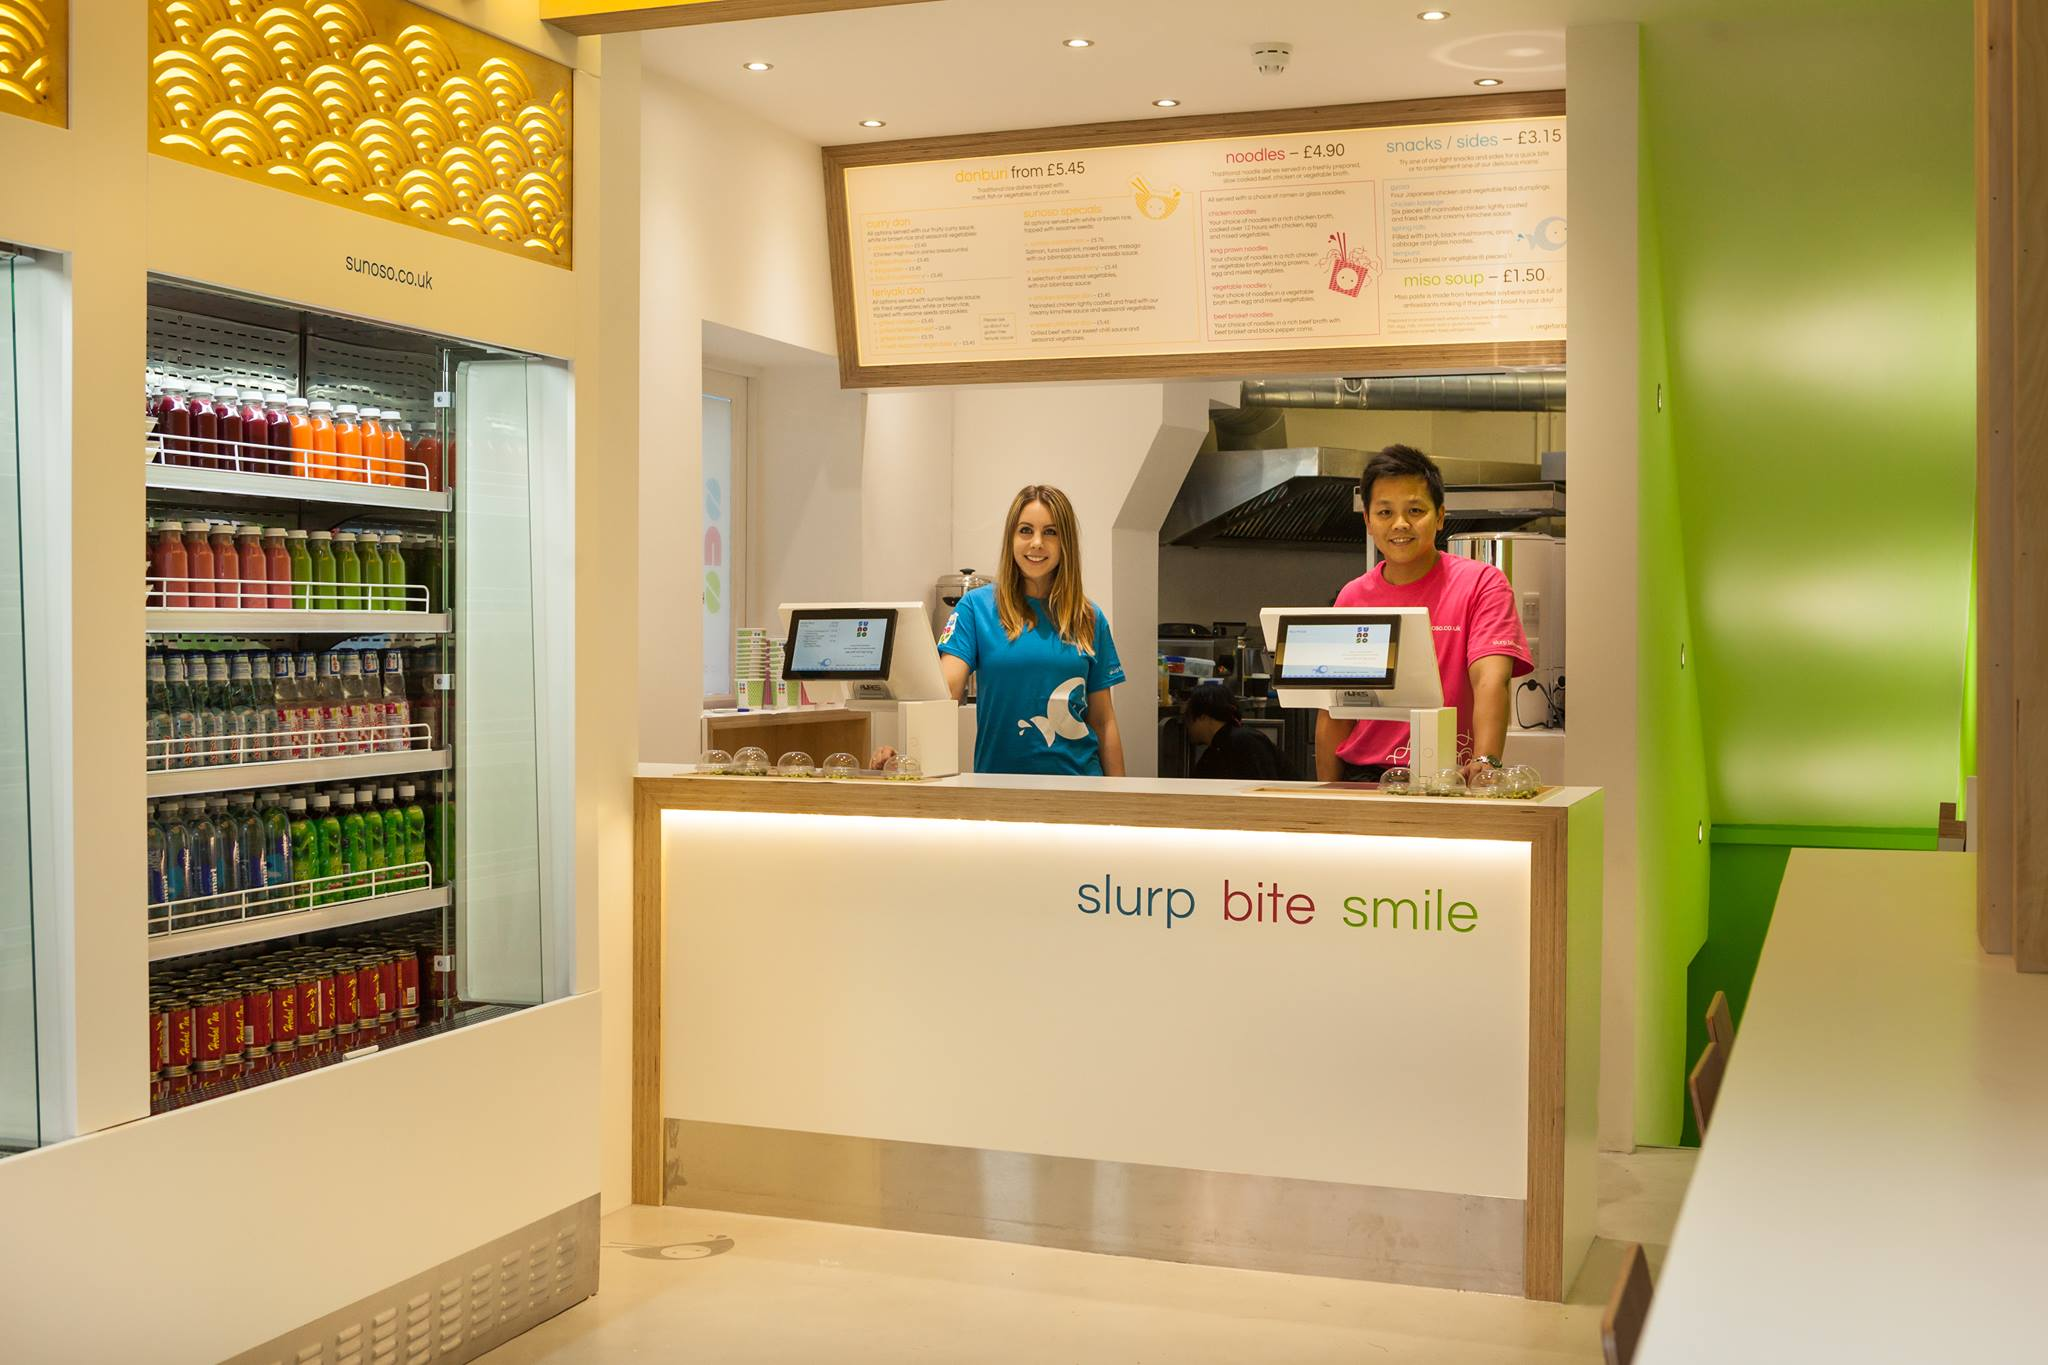 cash tills behind a smoothie bar